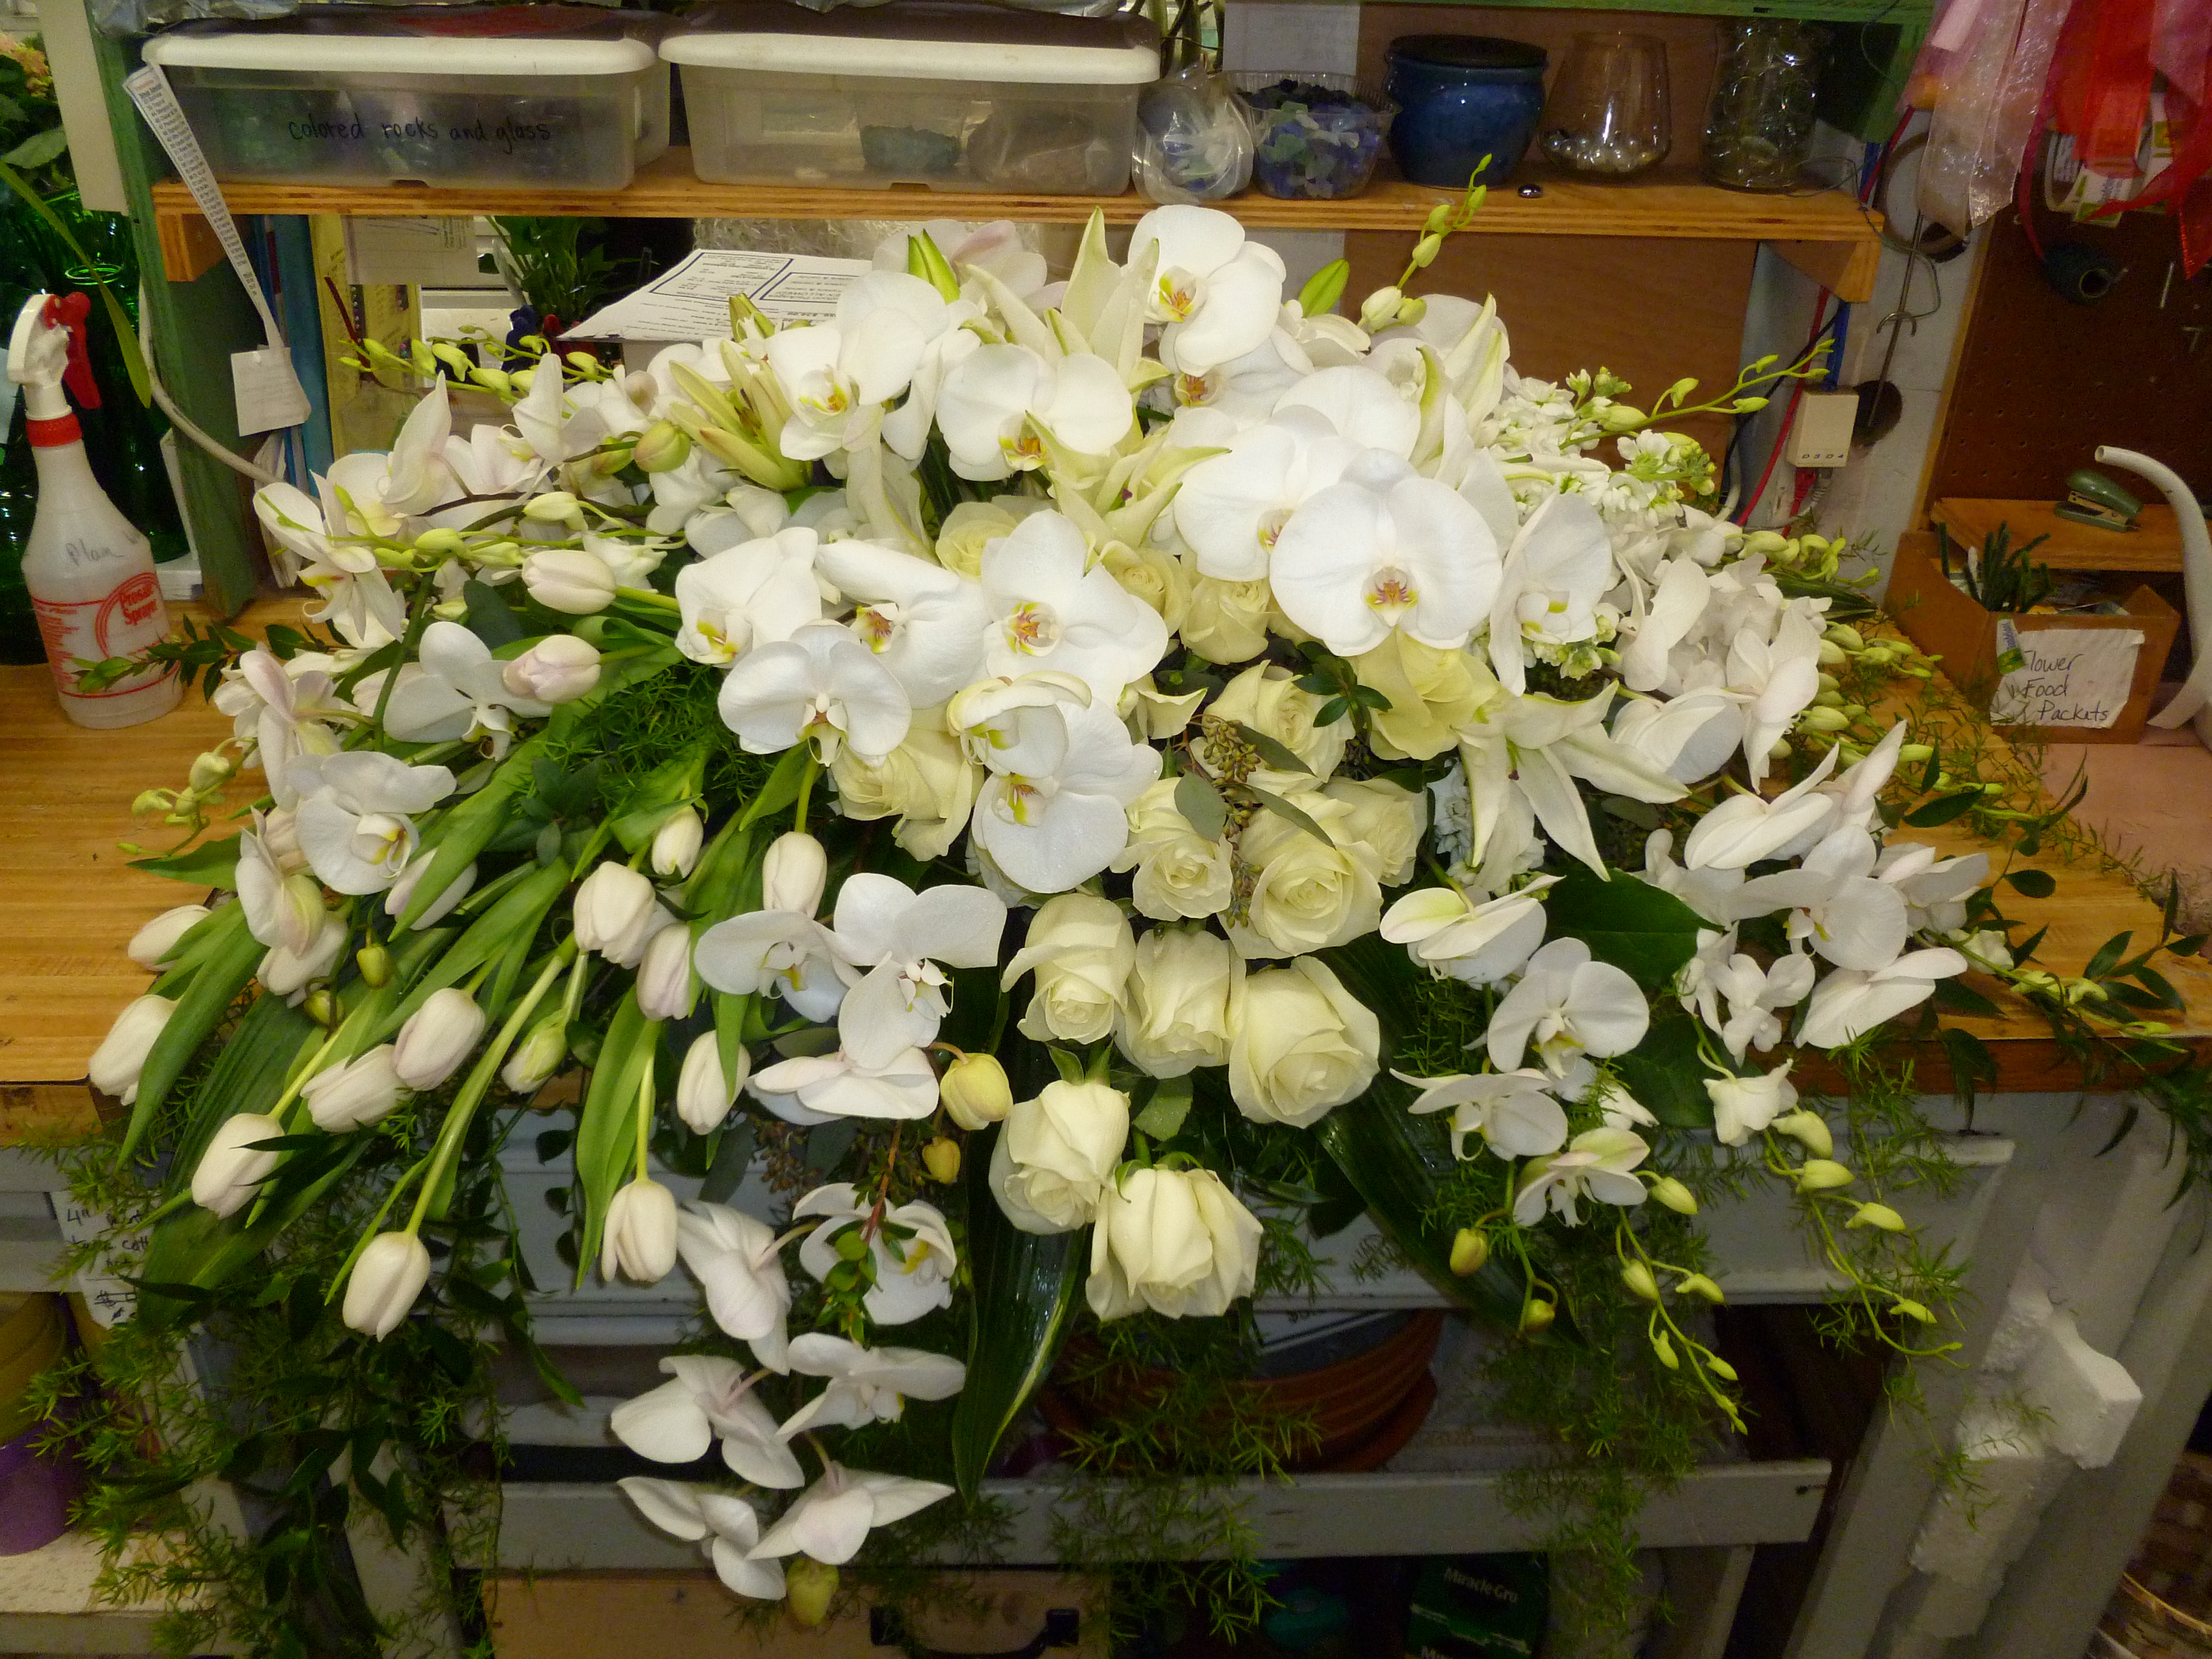 Memorial service funeral flowers dandelions flowers gifts rate this izmirmasajfo Image collections